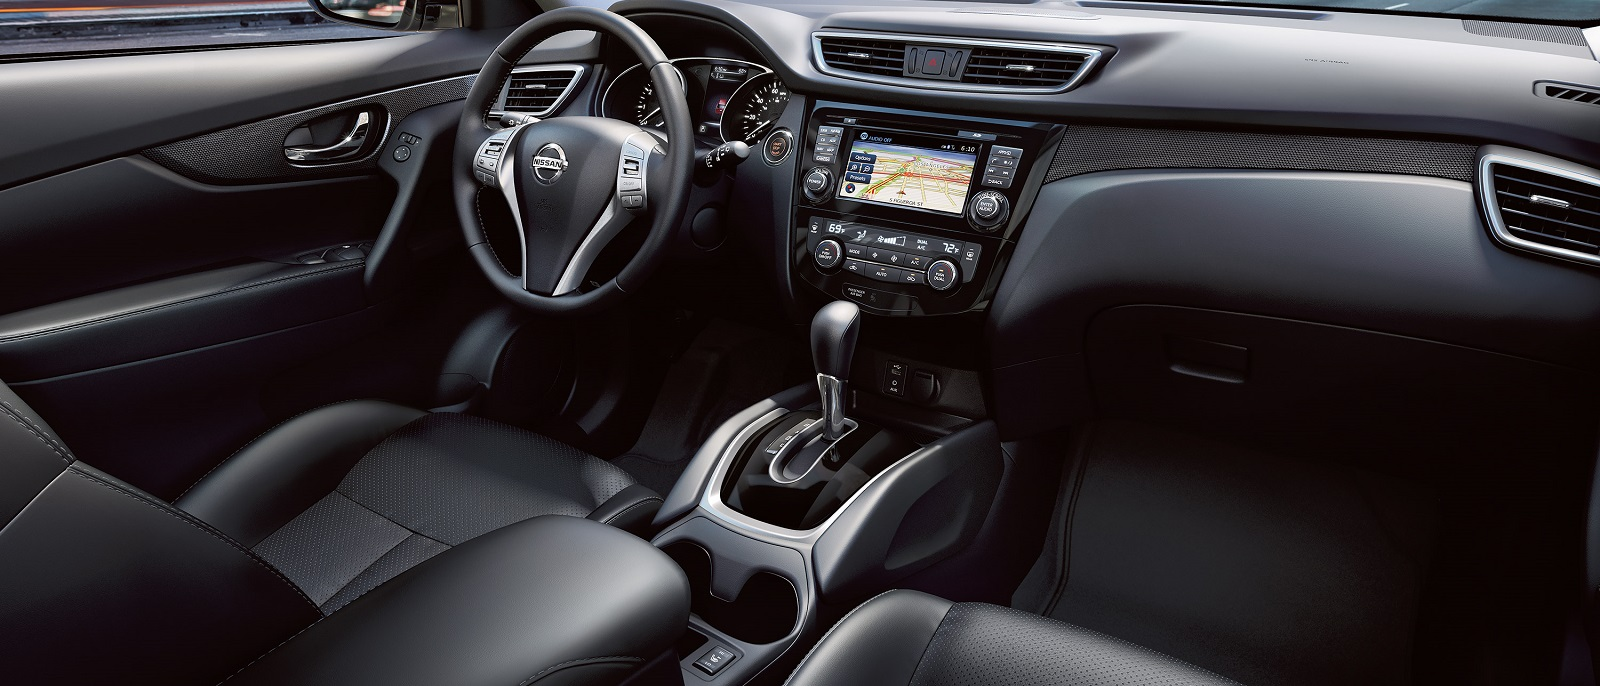 2016-nissan-rogue-interior-black-leather